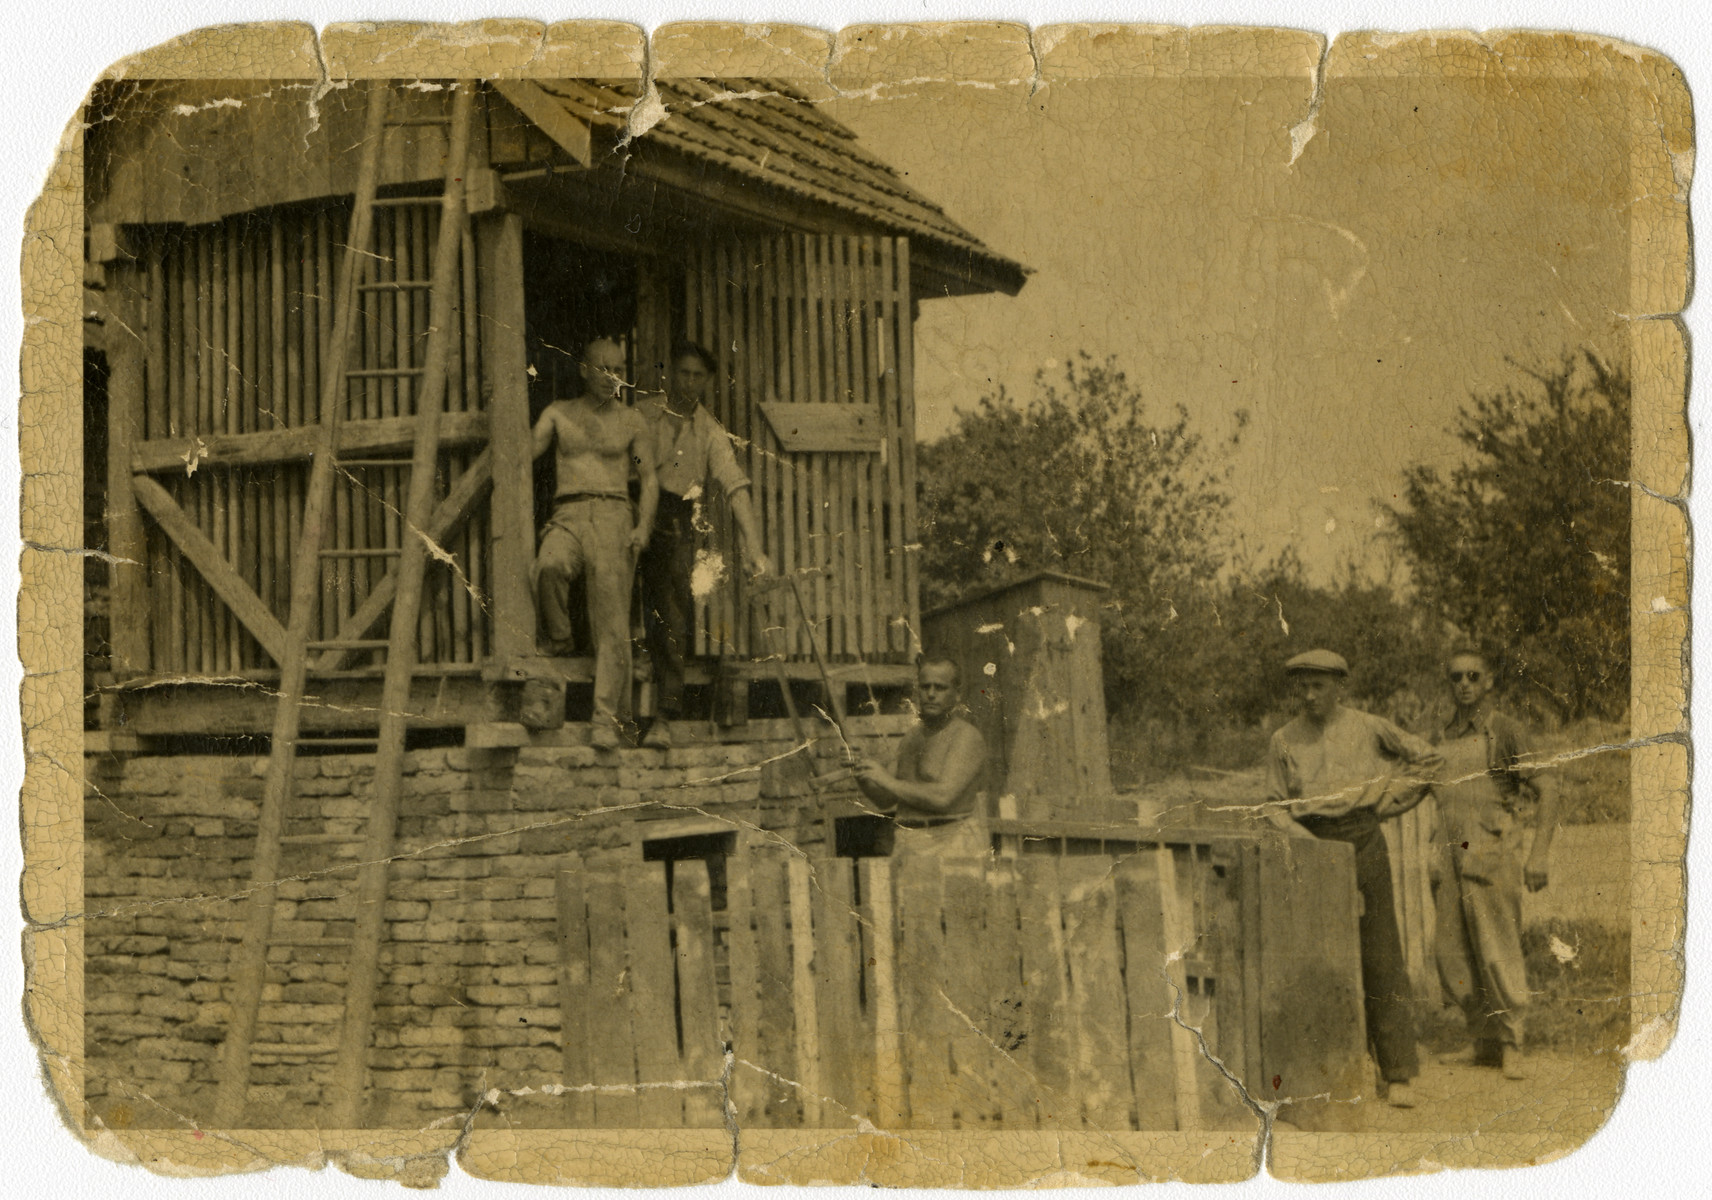 Serbian Jews are forced to work on a construction project.  Daniel Ripp is pictured in the structure on the right.